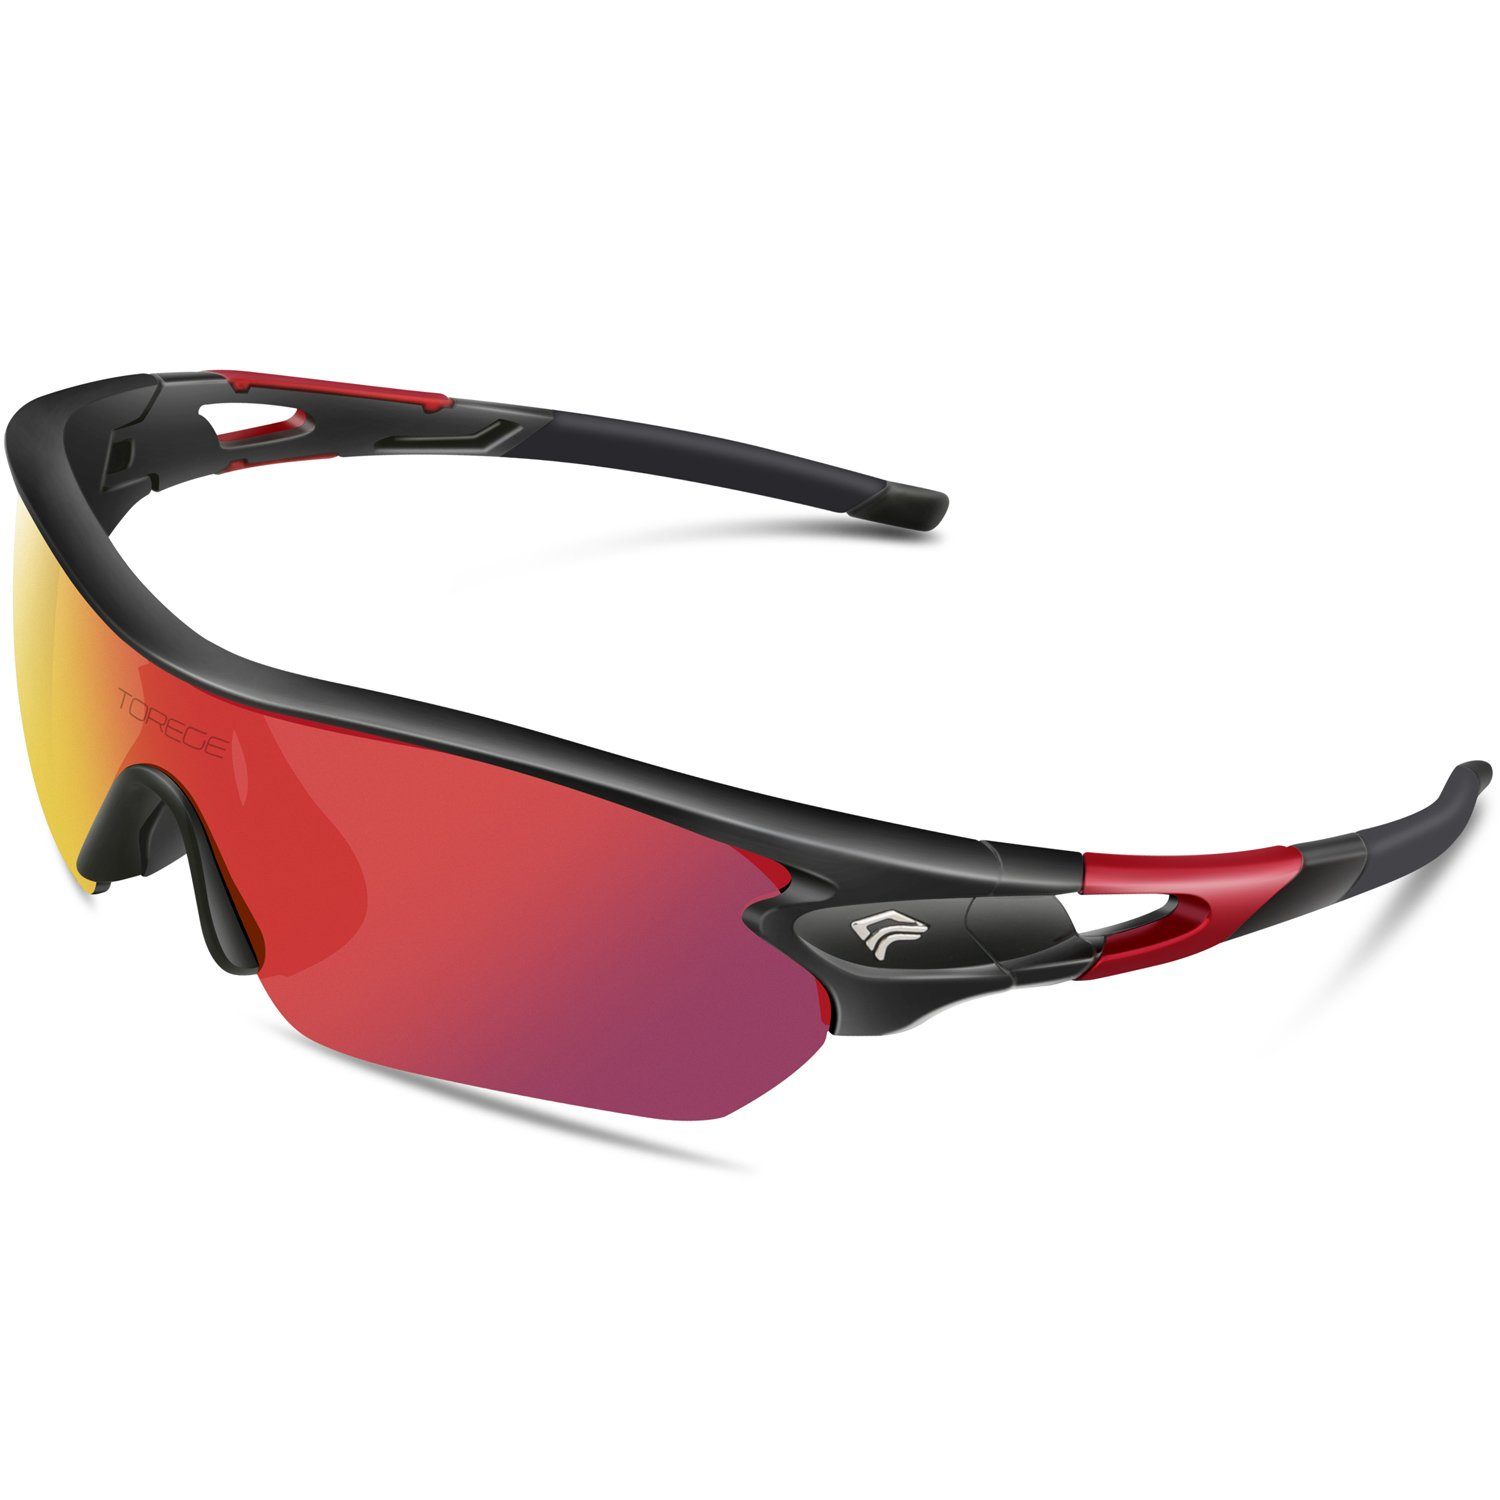 Best sunglasses for cycling | Amazon.com